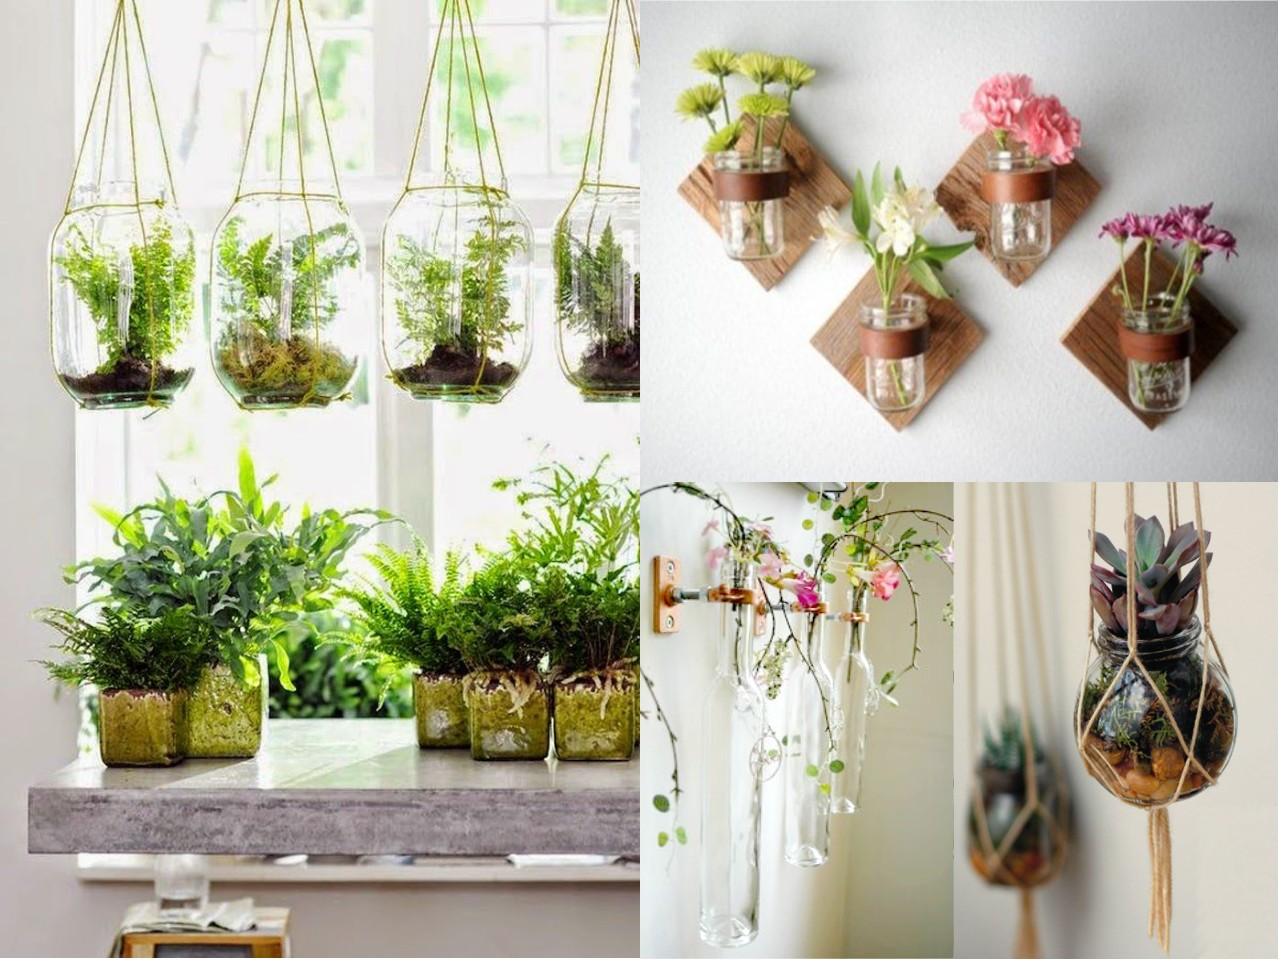 10 ideas de decoraci n con plantas colgantes for Adornos con botellas para plantas